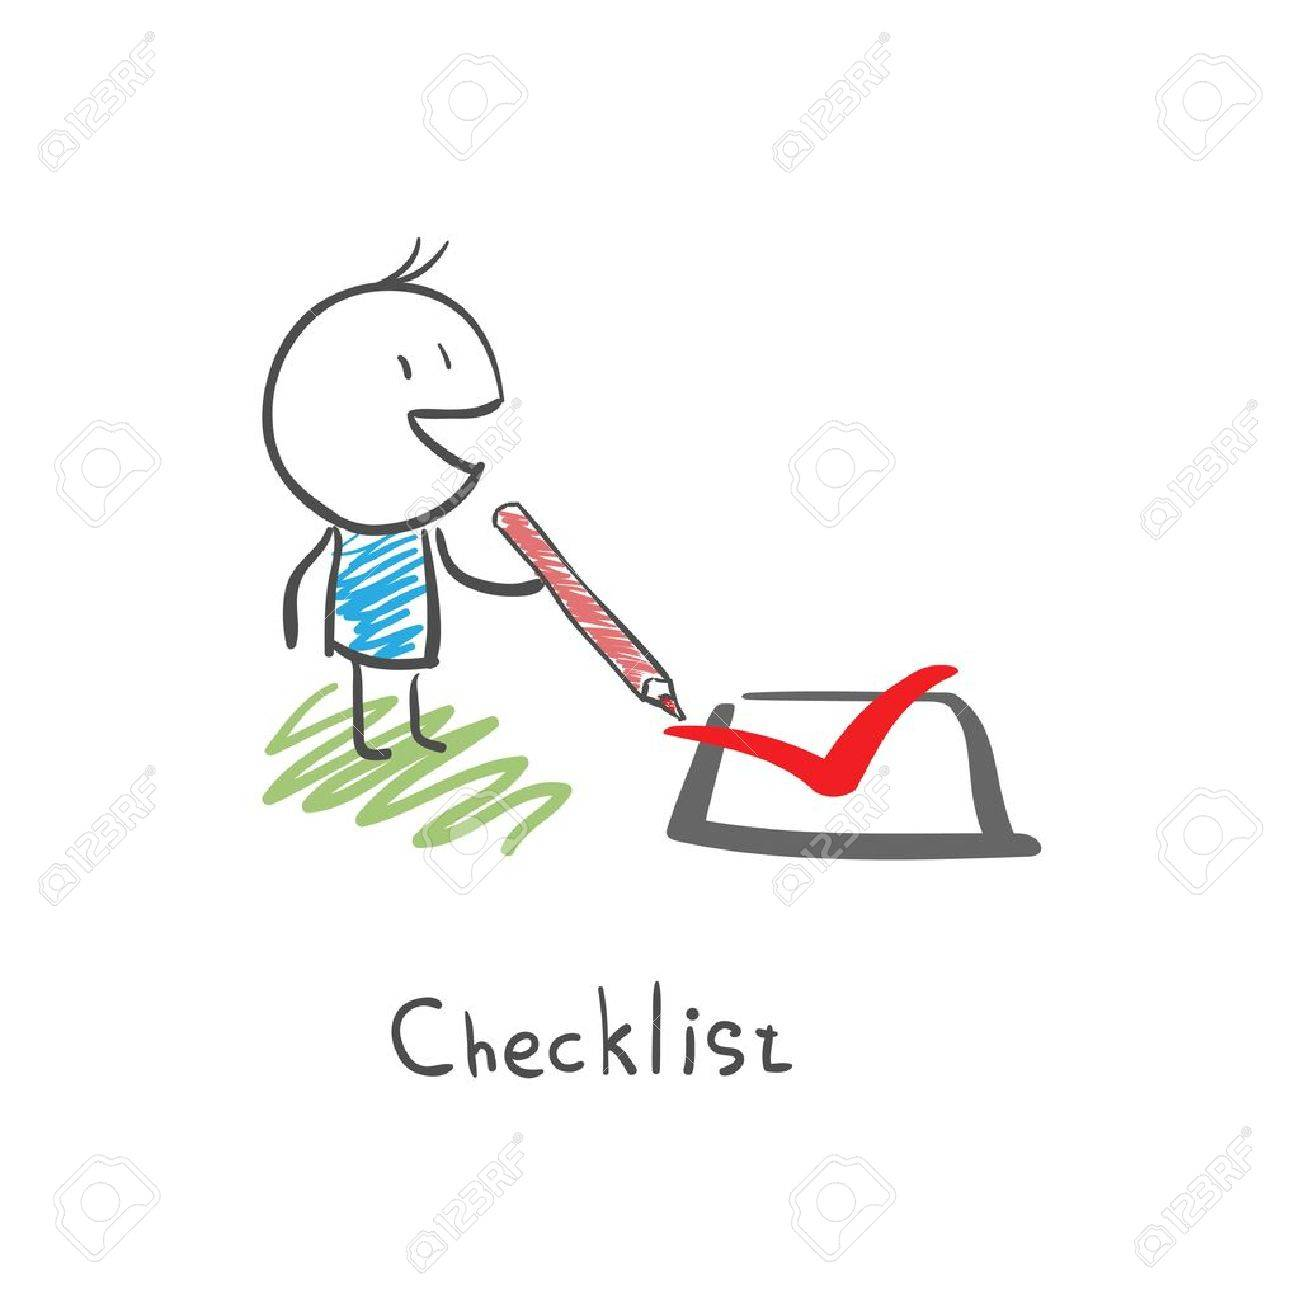 Checklist Stock Vector - 14579893